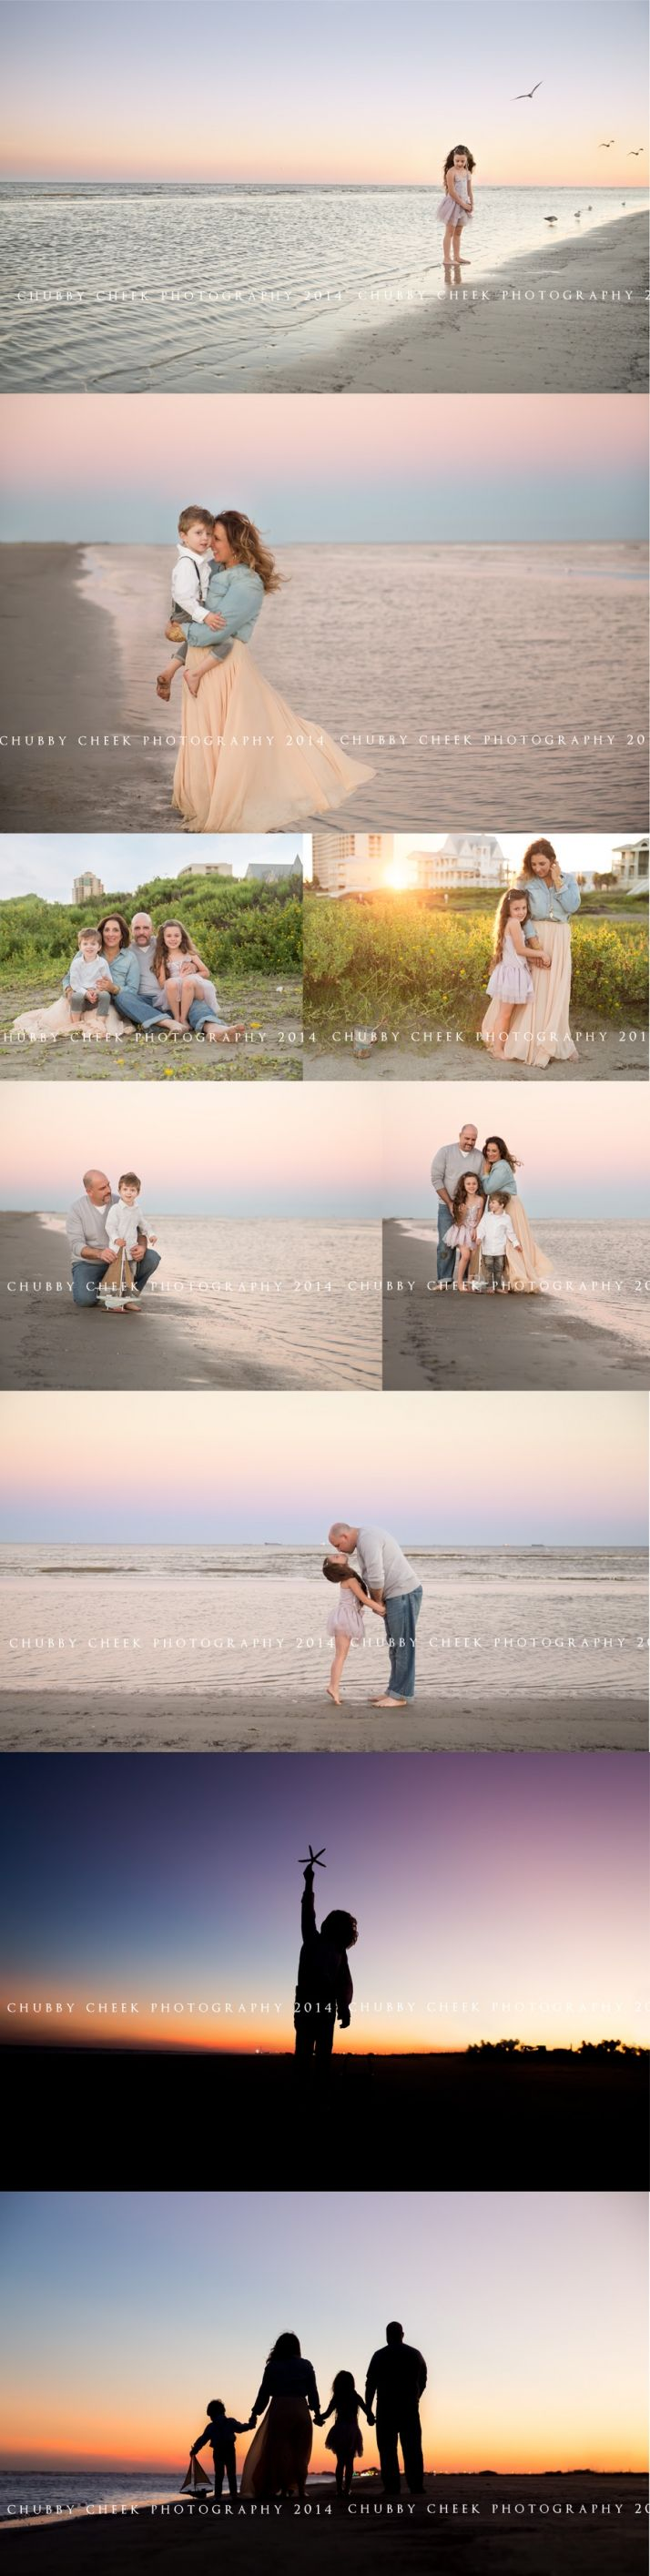 Beach wedding in texas  Christine Smith myllgirls on Pinterest